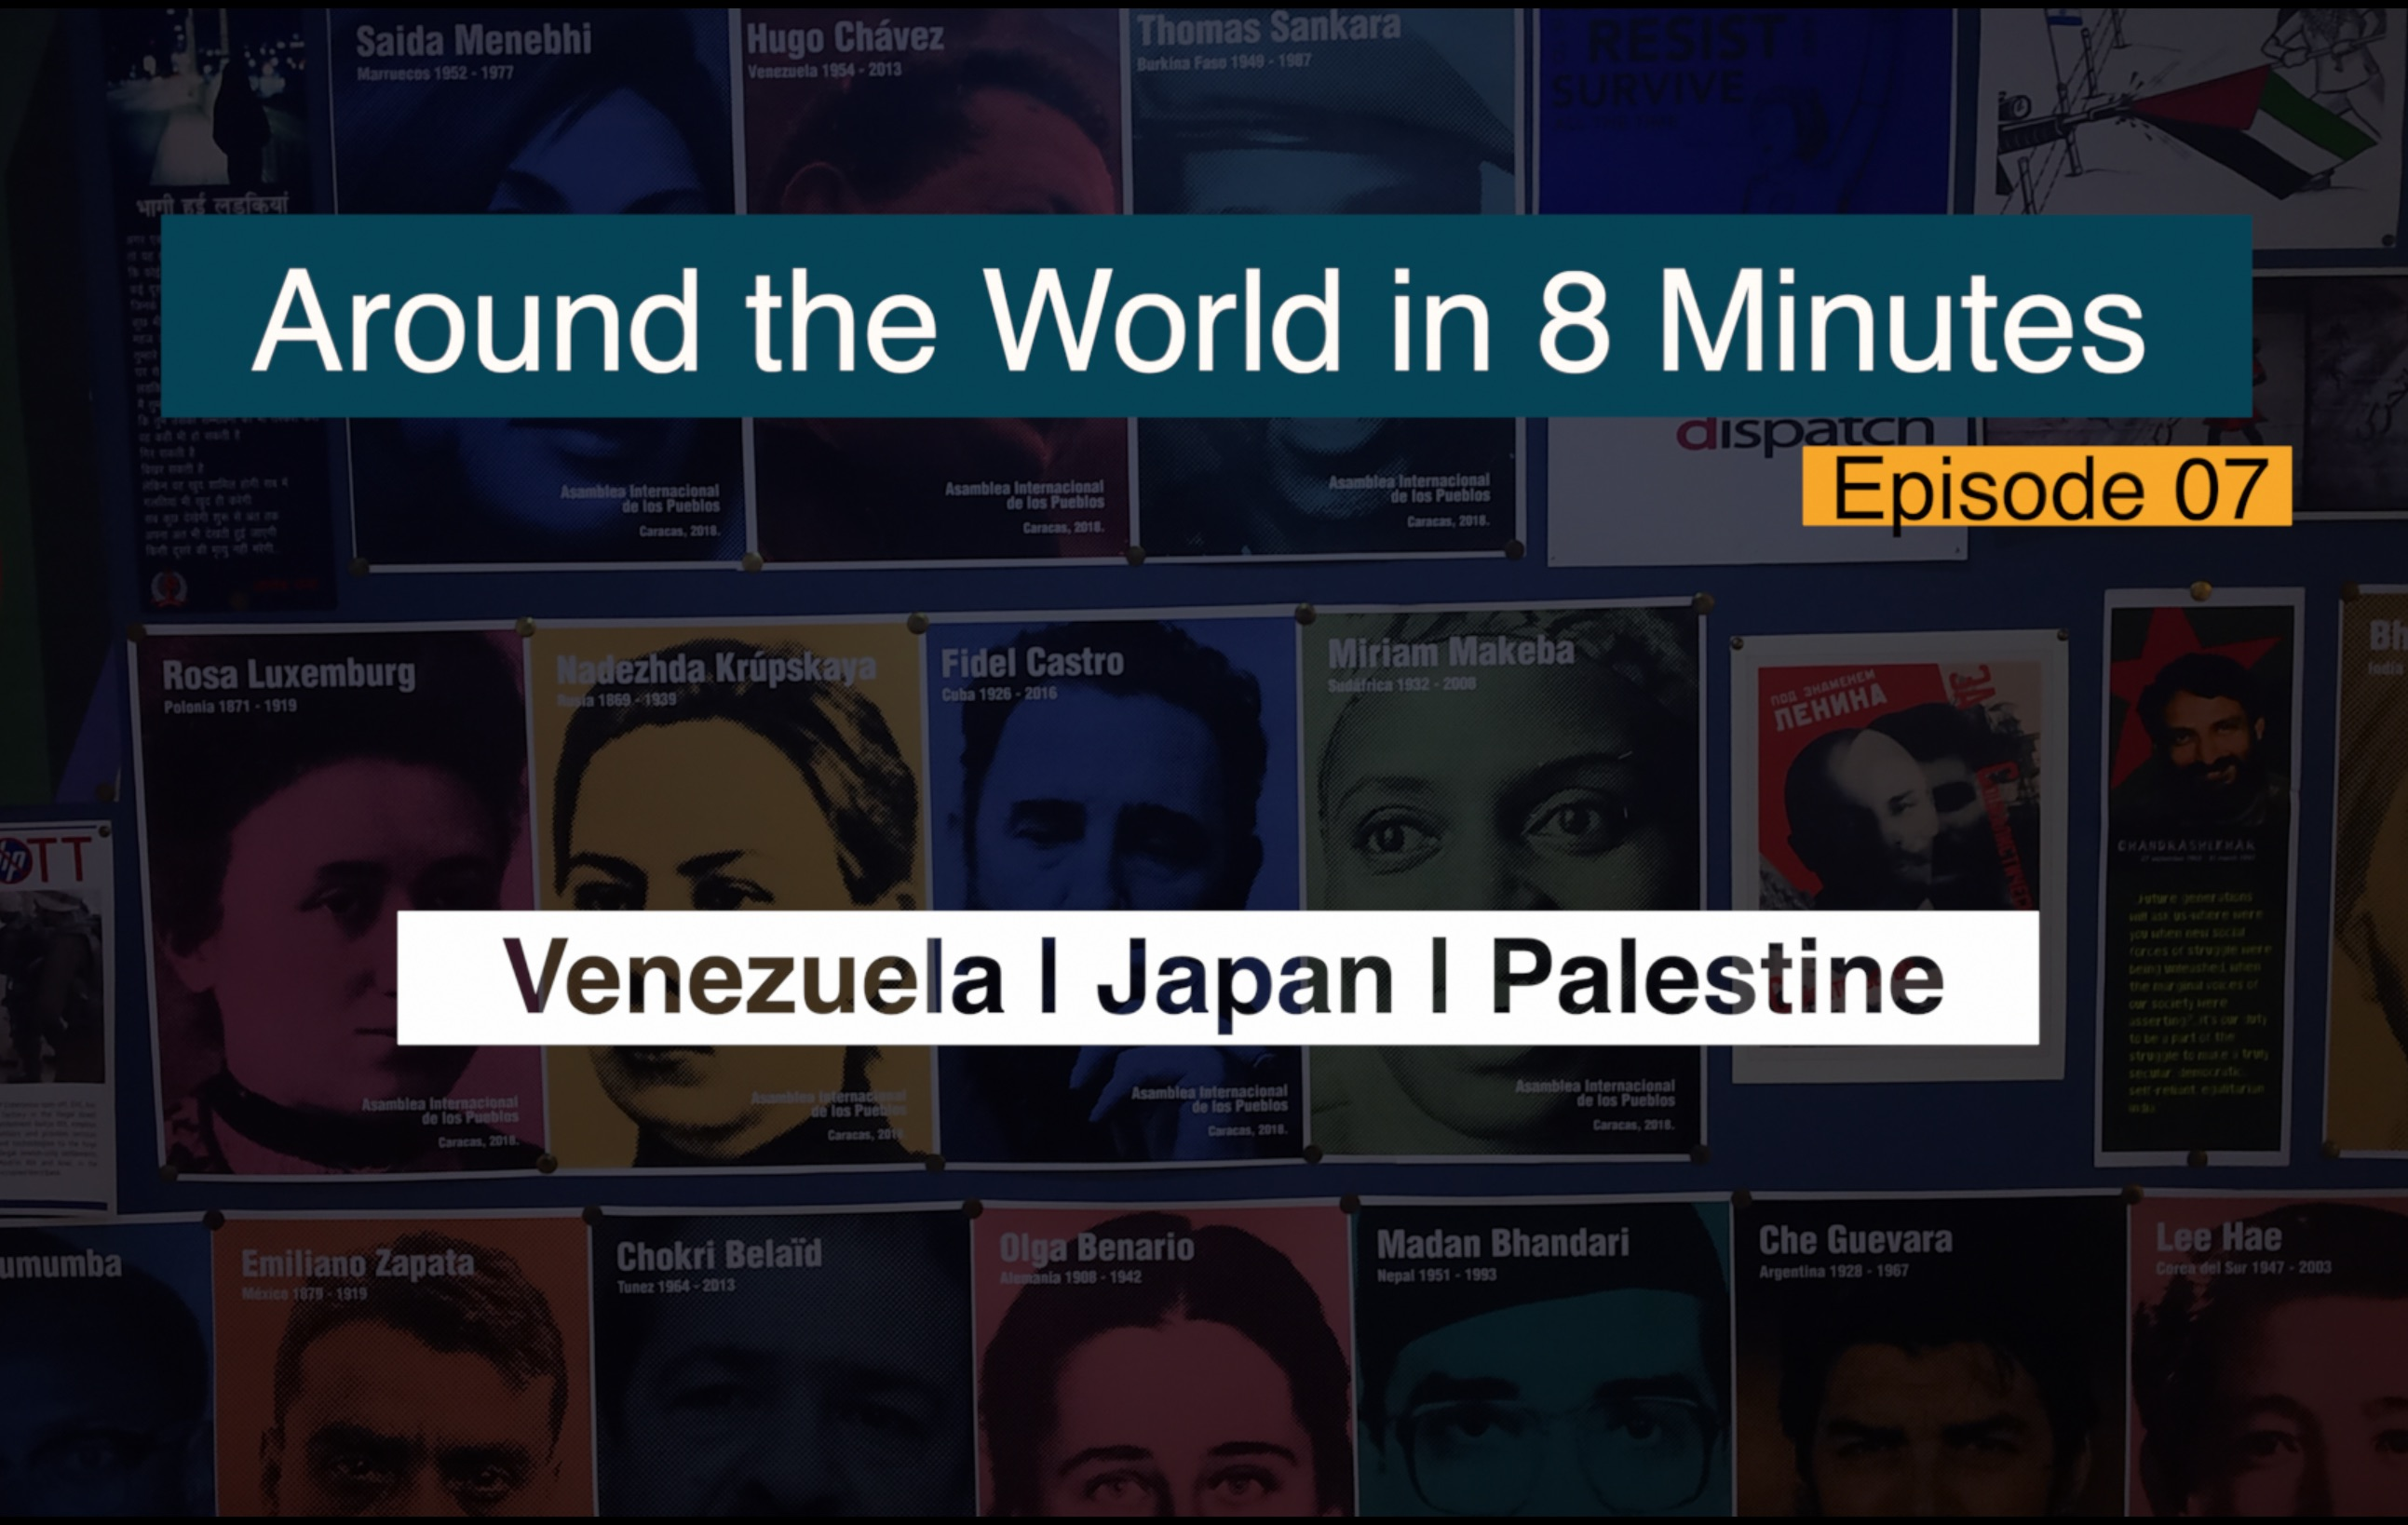 Around the world in 8 minutes ep 7 Peoples Dispatch